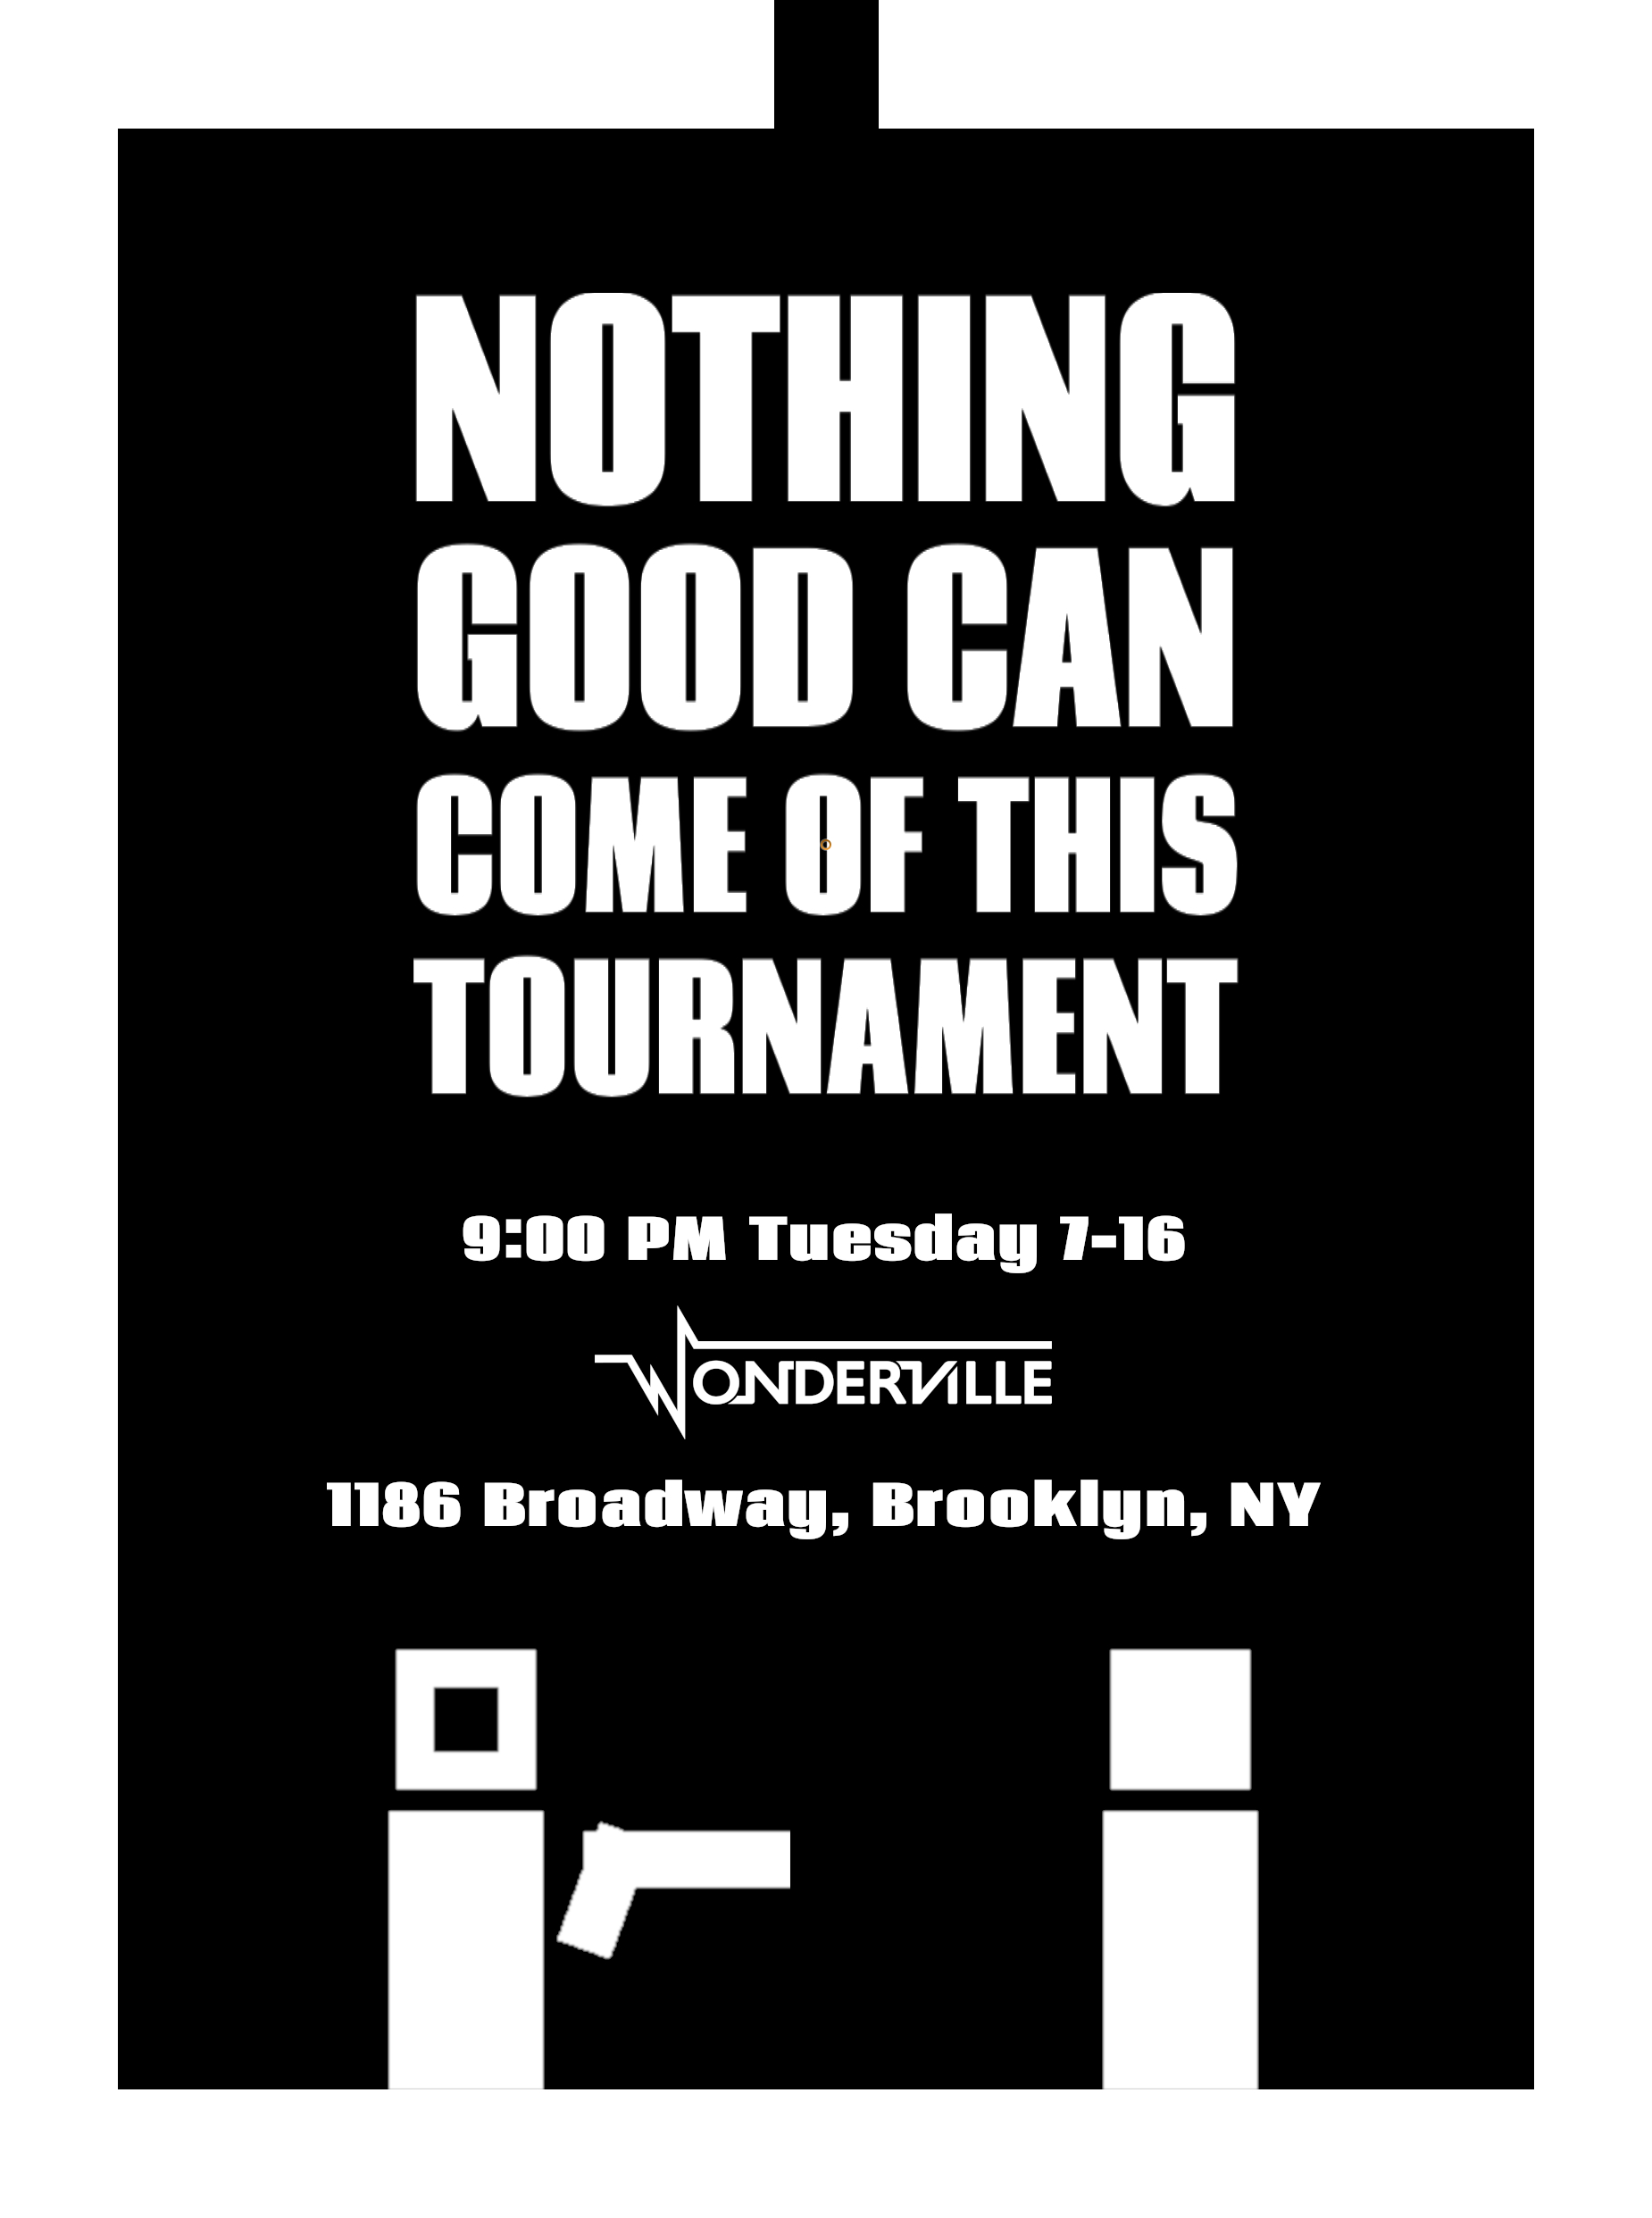 RSVP:  https://withfriends.co/Event/2097209/Nothing_Good_Can_Come_Of_This_Tournament